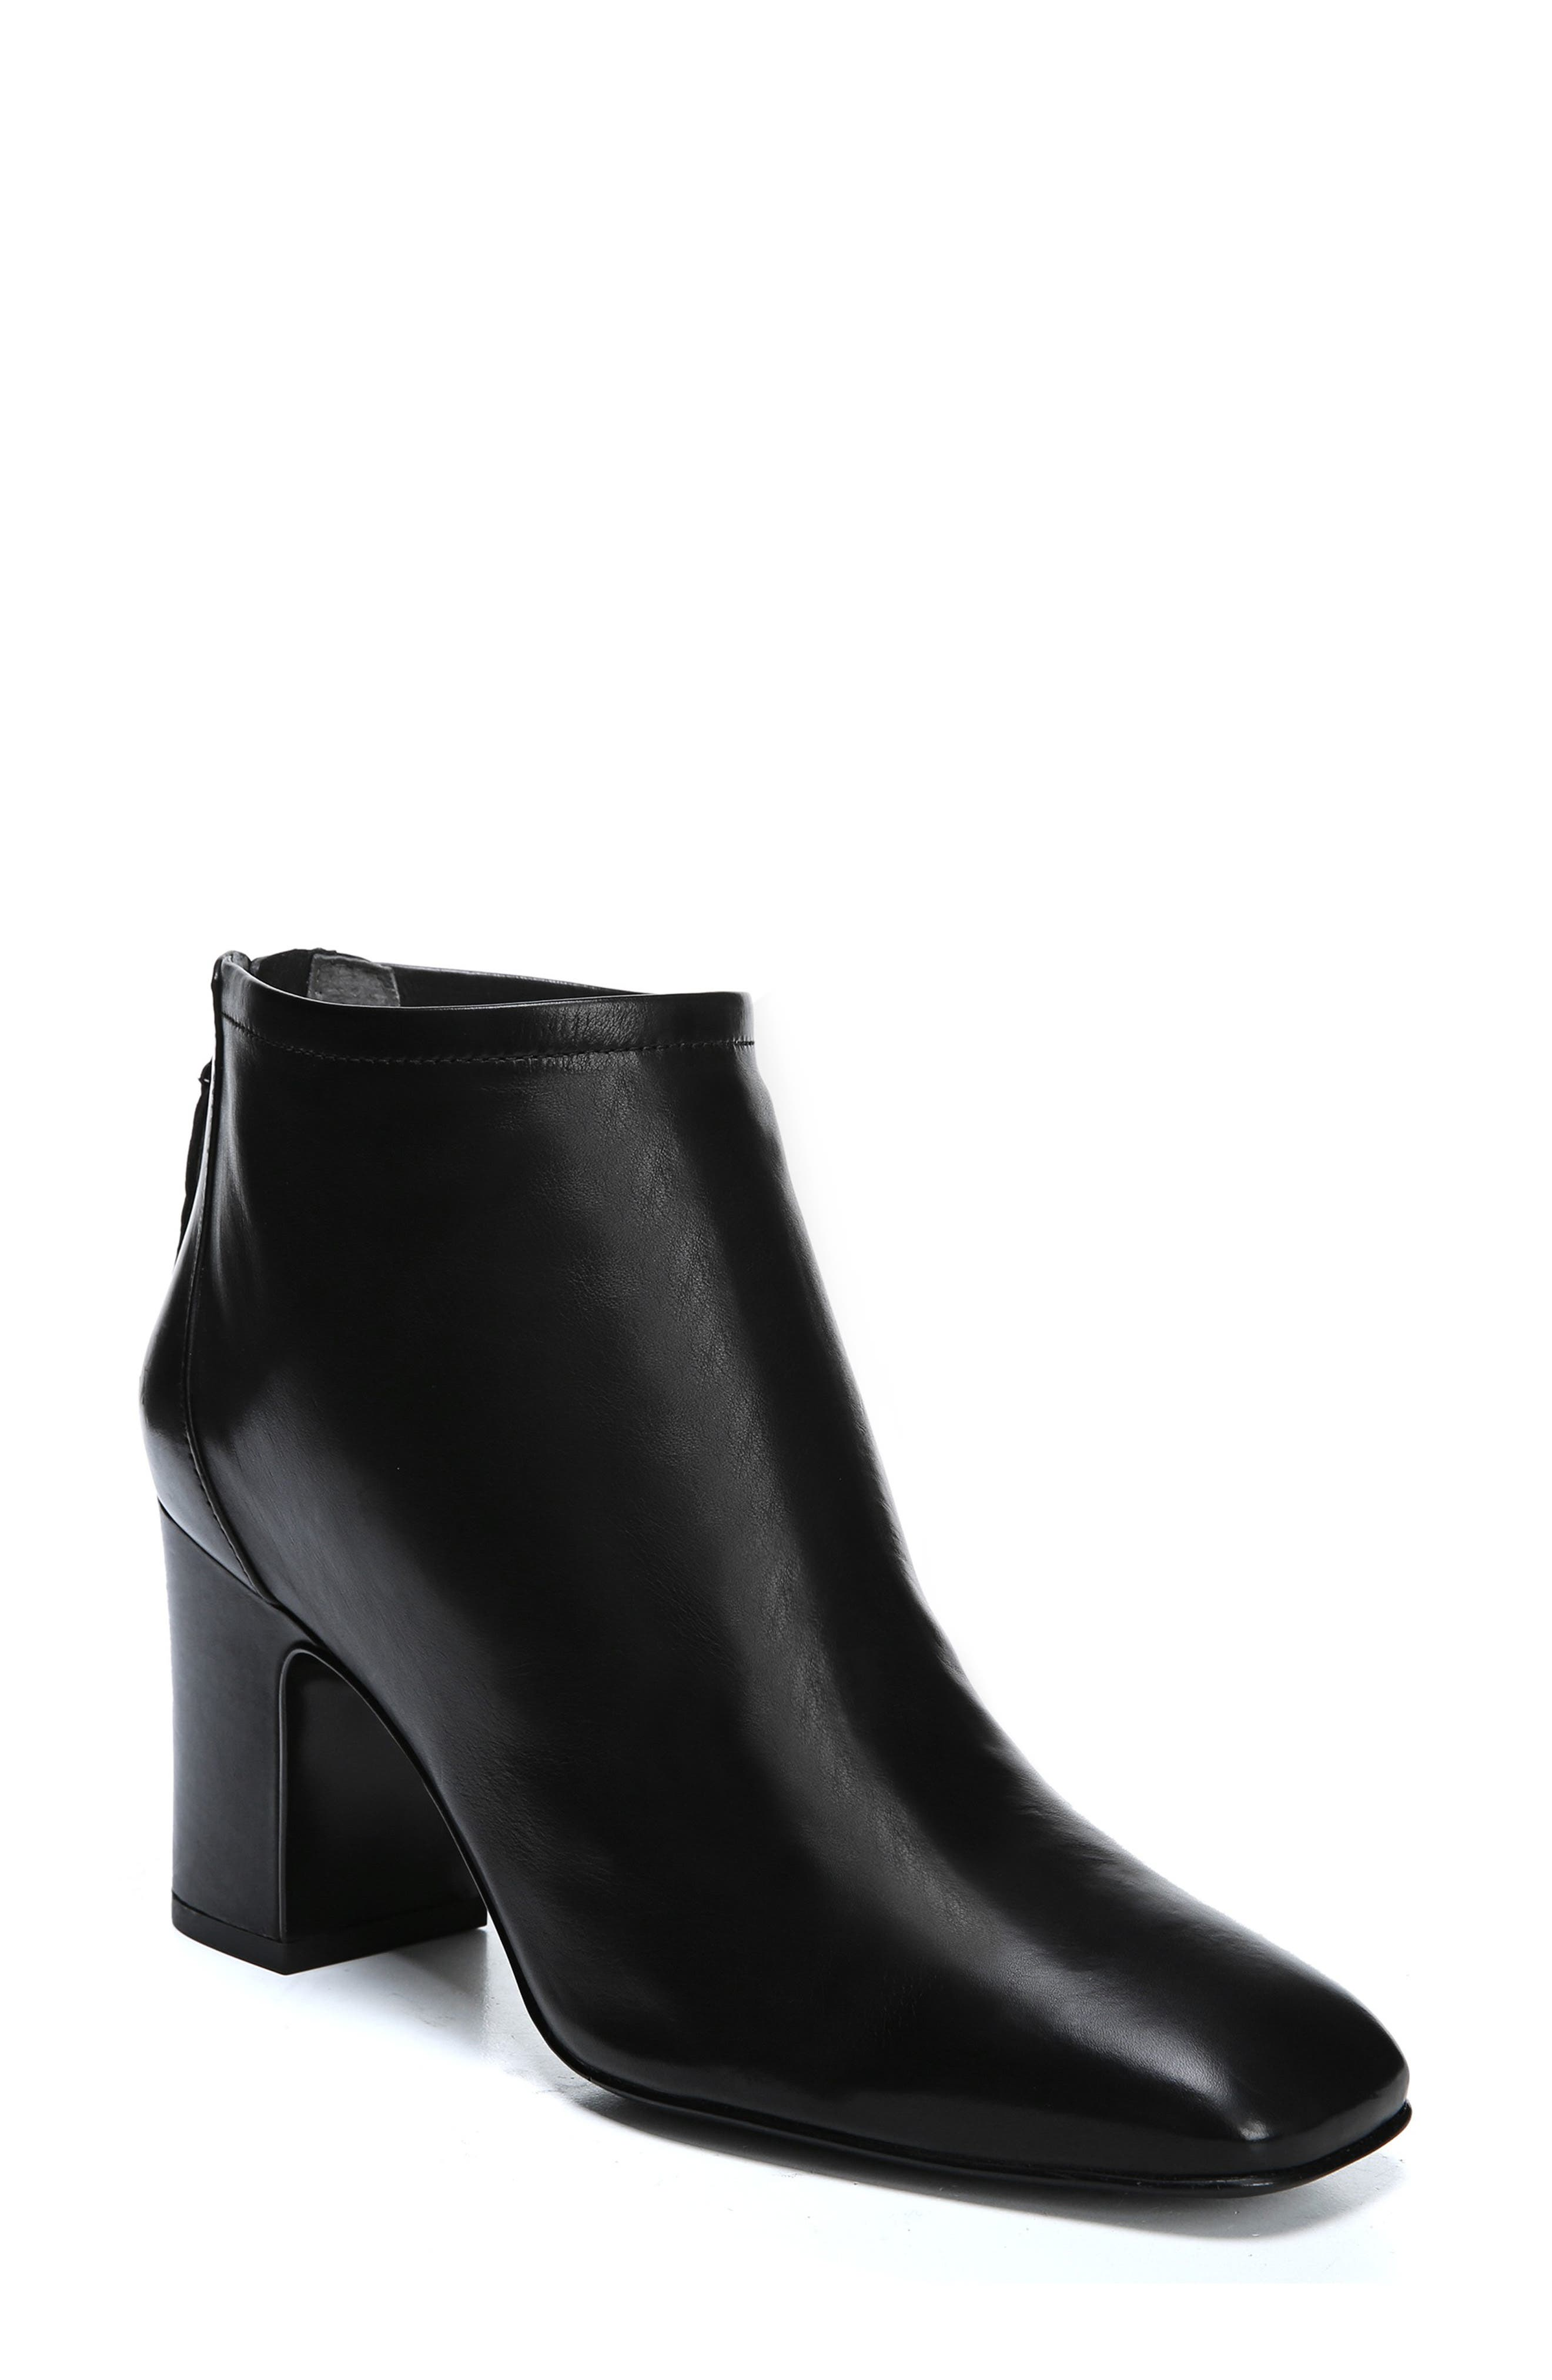 Jacoby Bootie,                         Main,                         color, 001